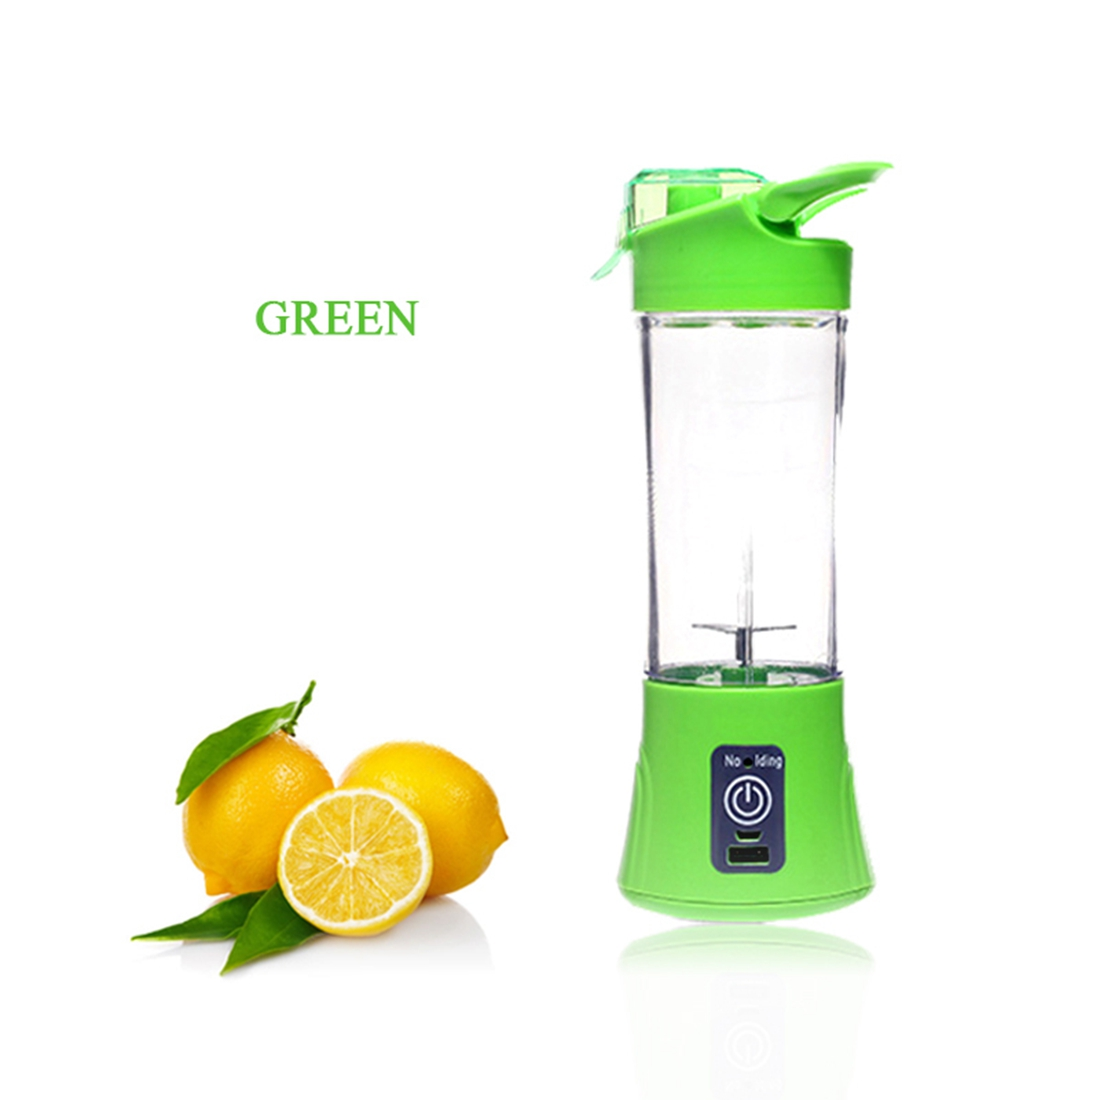 New Green Fashion Rechargeable Juicer Multi-function Electric Juice Cup Home Portable Juice Cup Mini Fruit Juicer